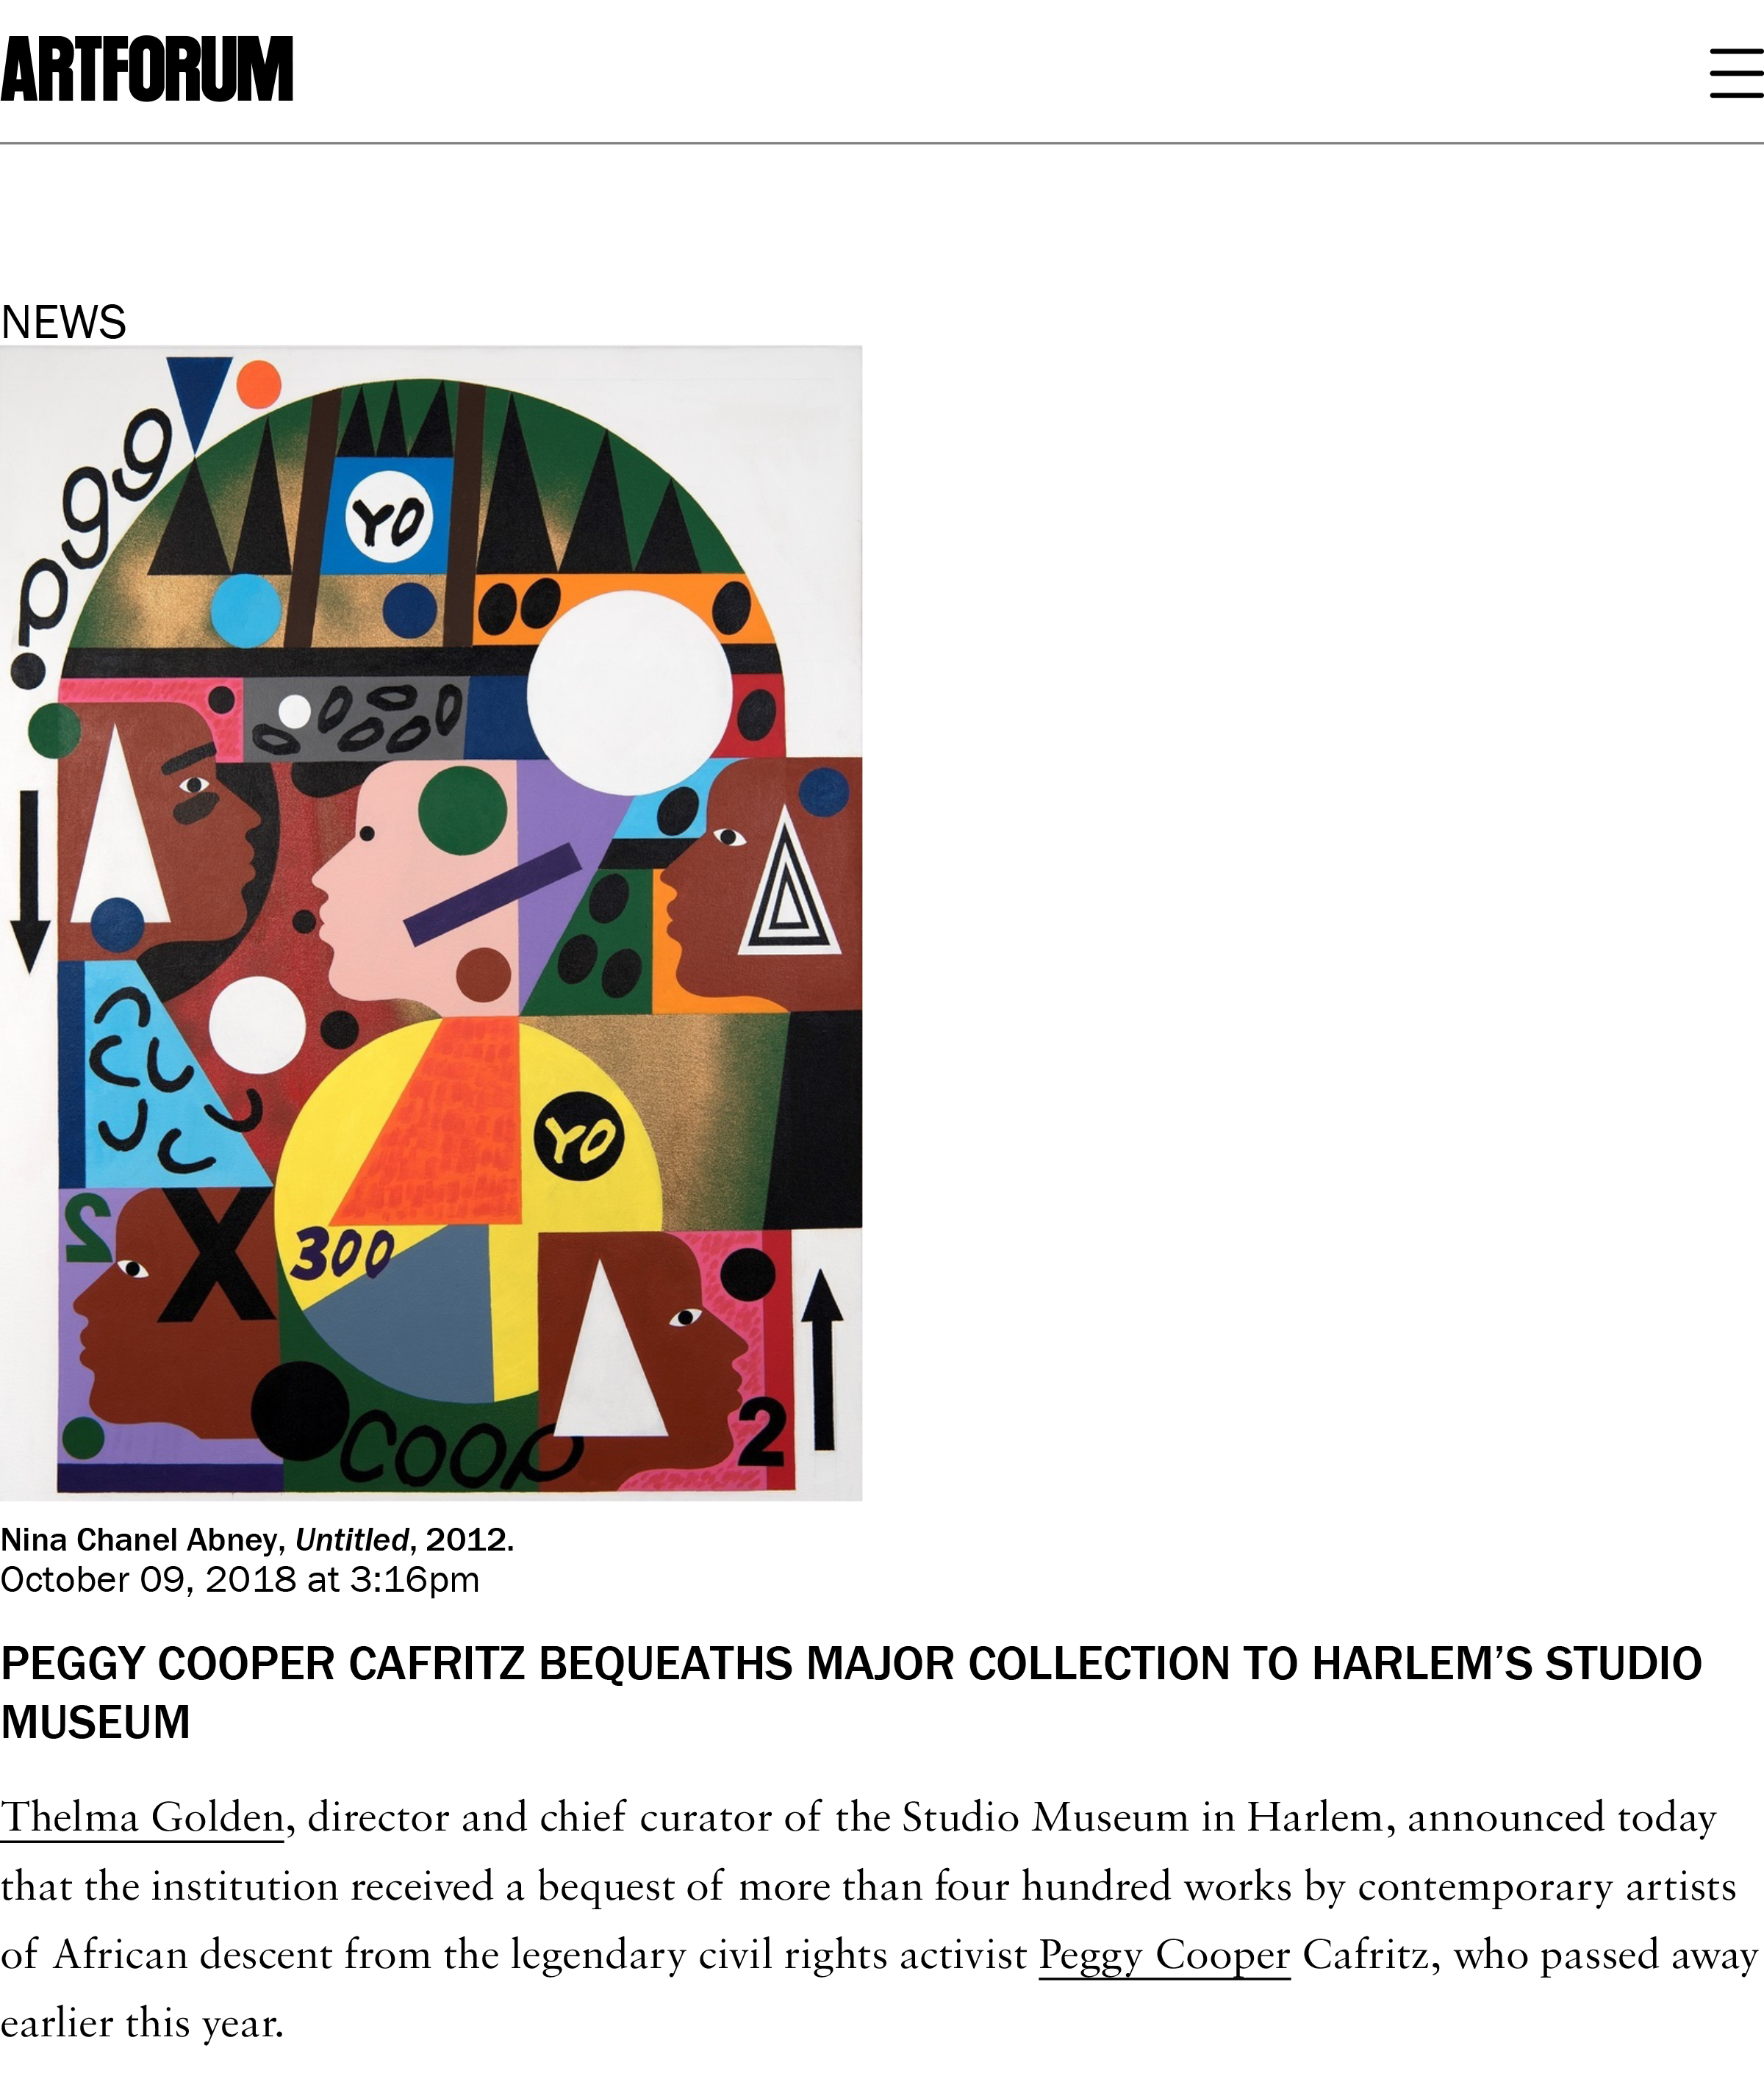 ARTFORUM Peggy Cooper Cafritz Bequeaths Major Collection to Harlem's Studio Museum - Artforum International-1.jpg